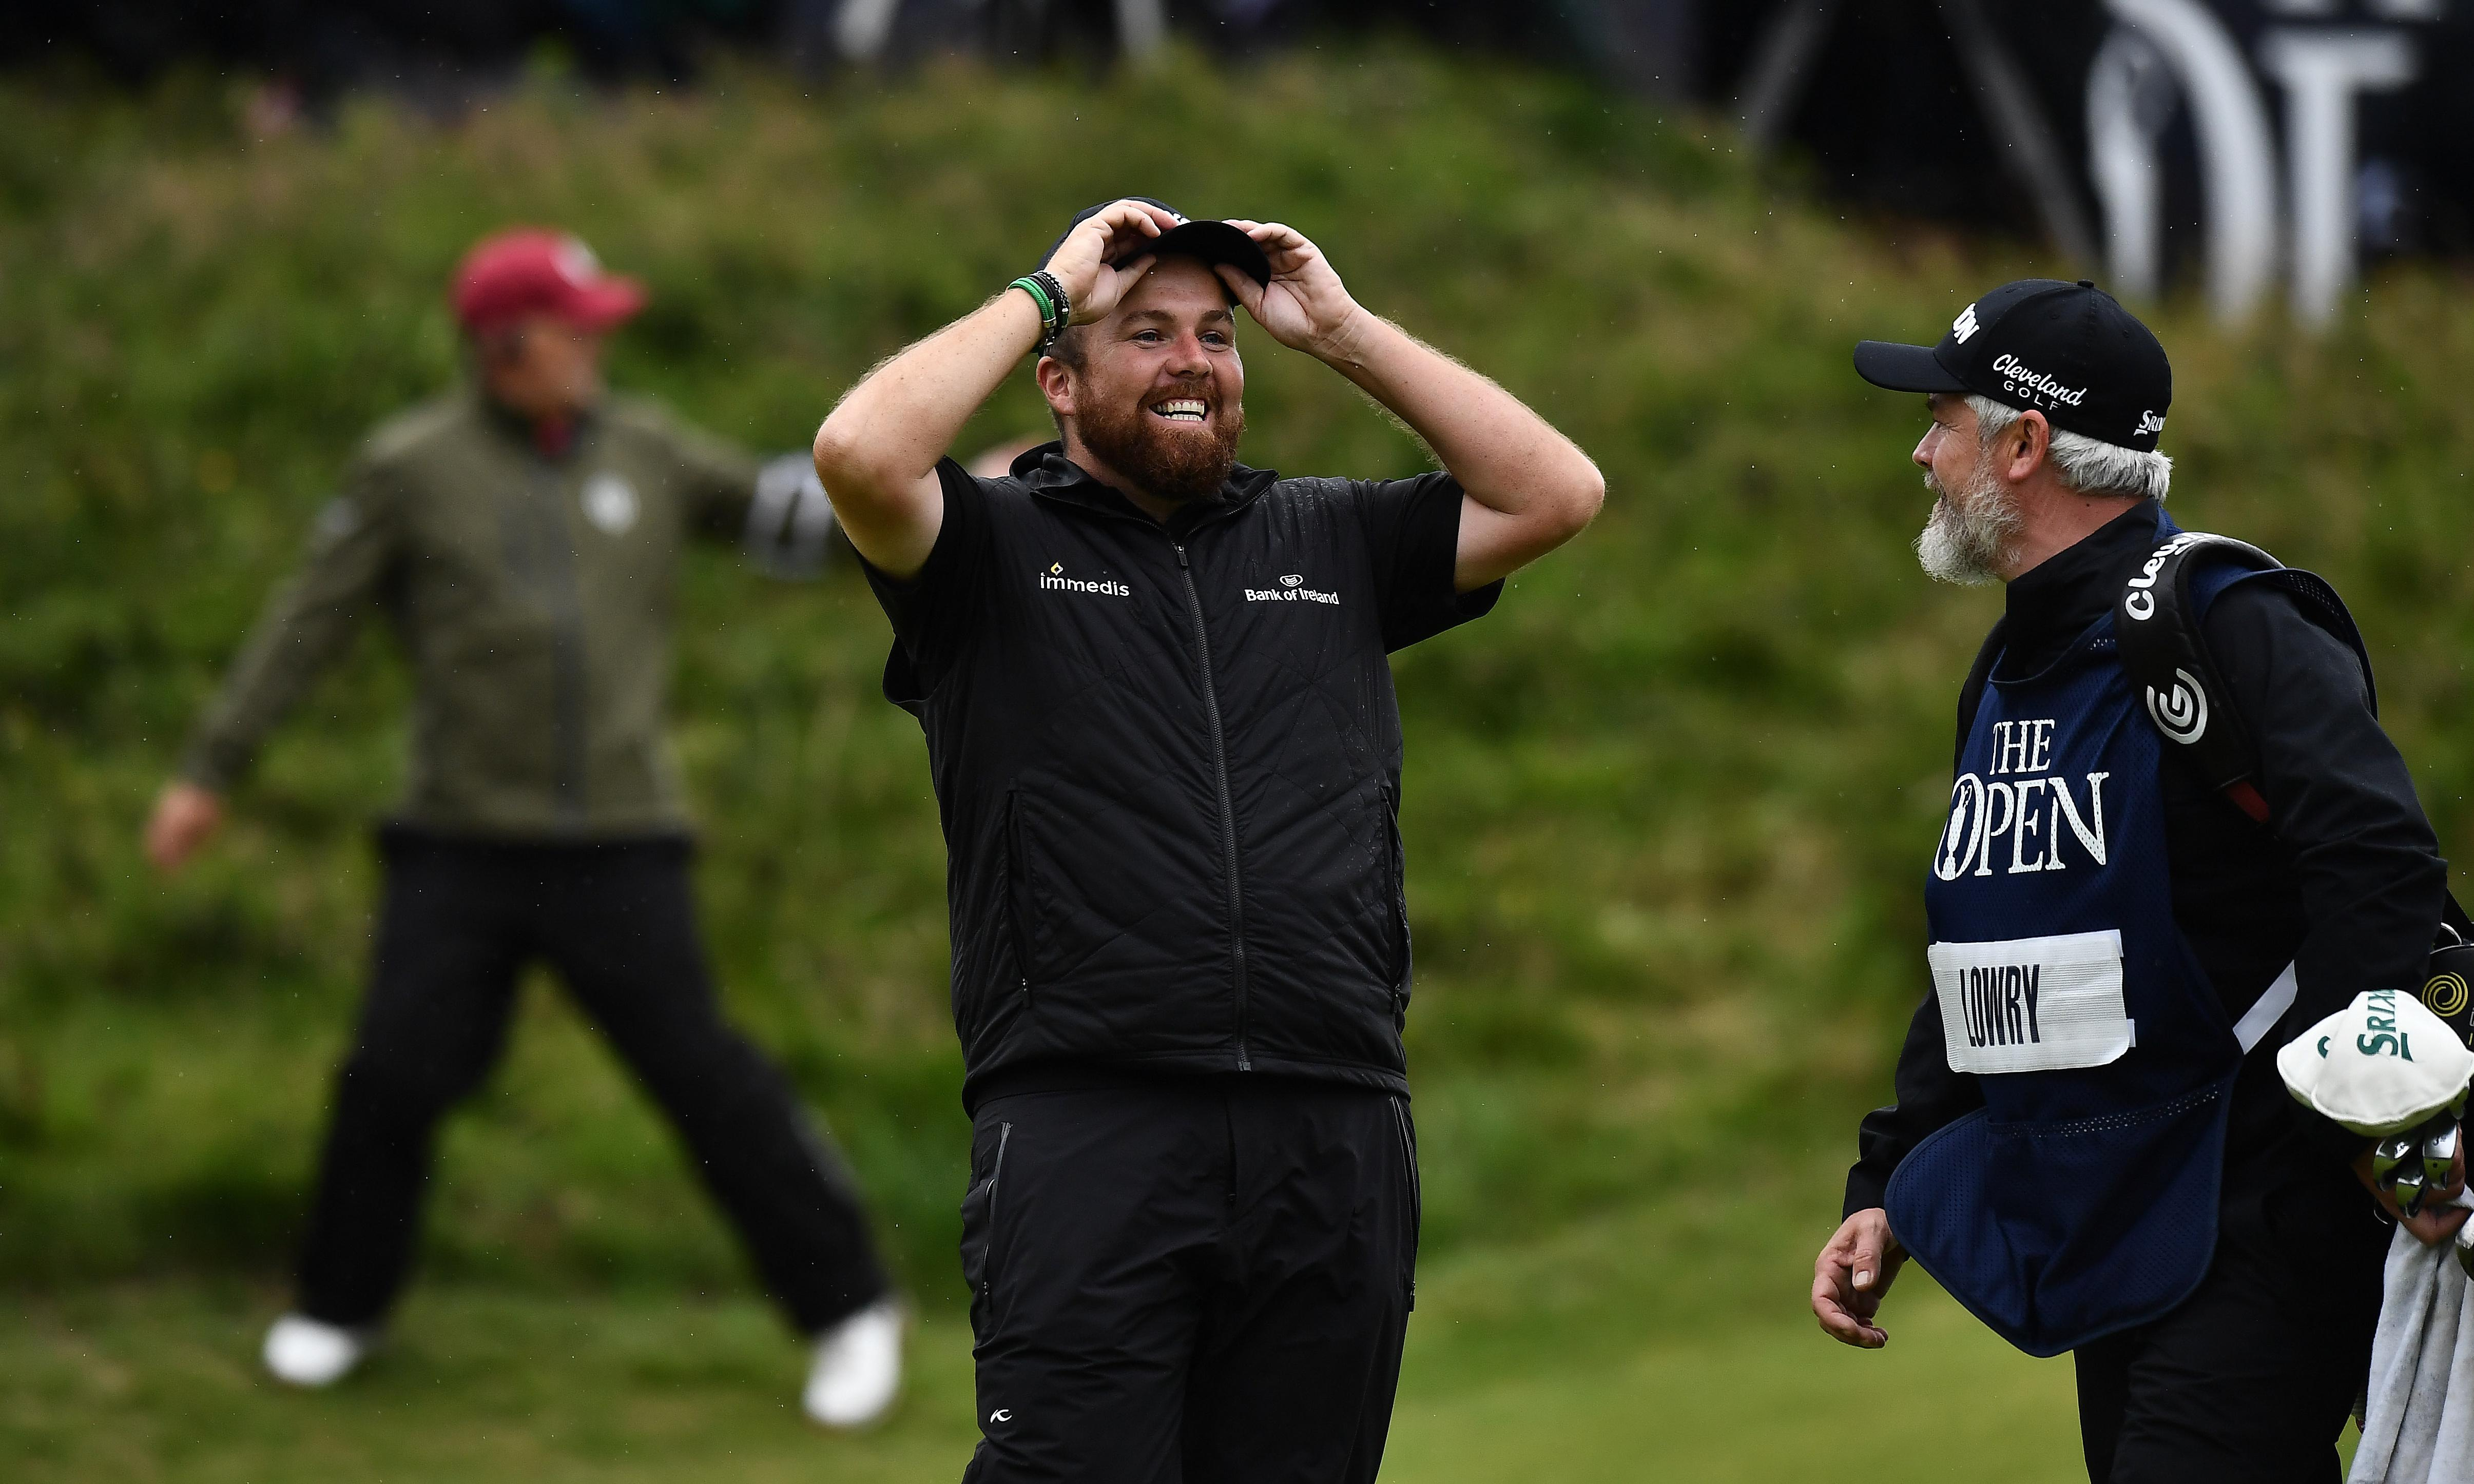 Shane Lowry wants to stay the same but life will change after Open win